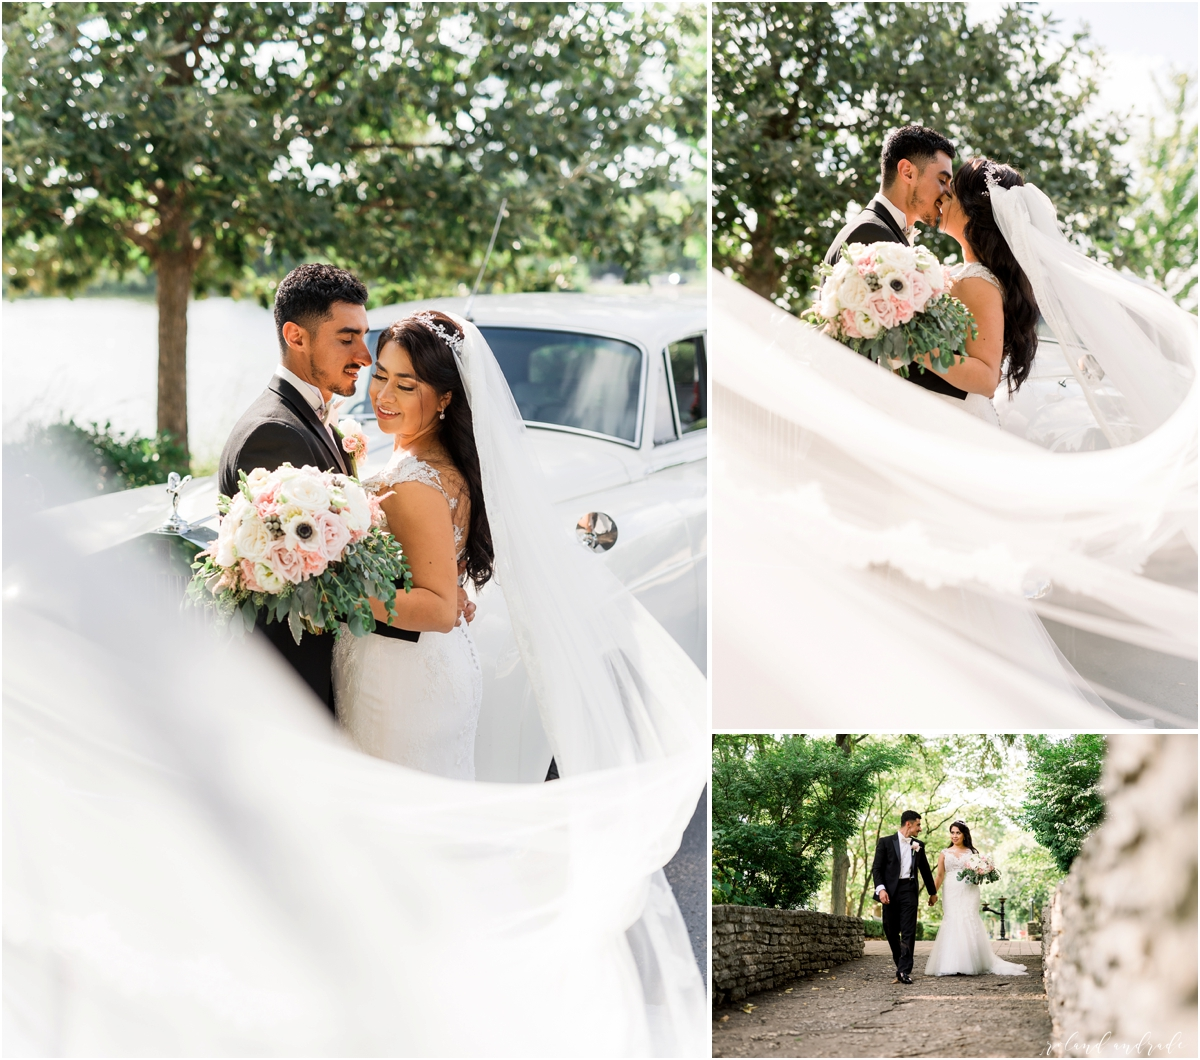 Chicago Wedding Photography, Orchidia Real Wedding, Rosemont Wedding, Best Chicago Photographer56.jpg